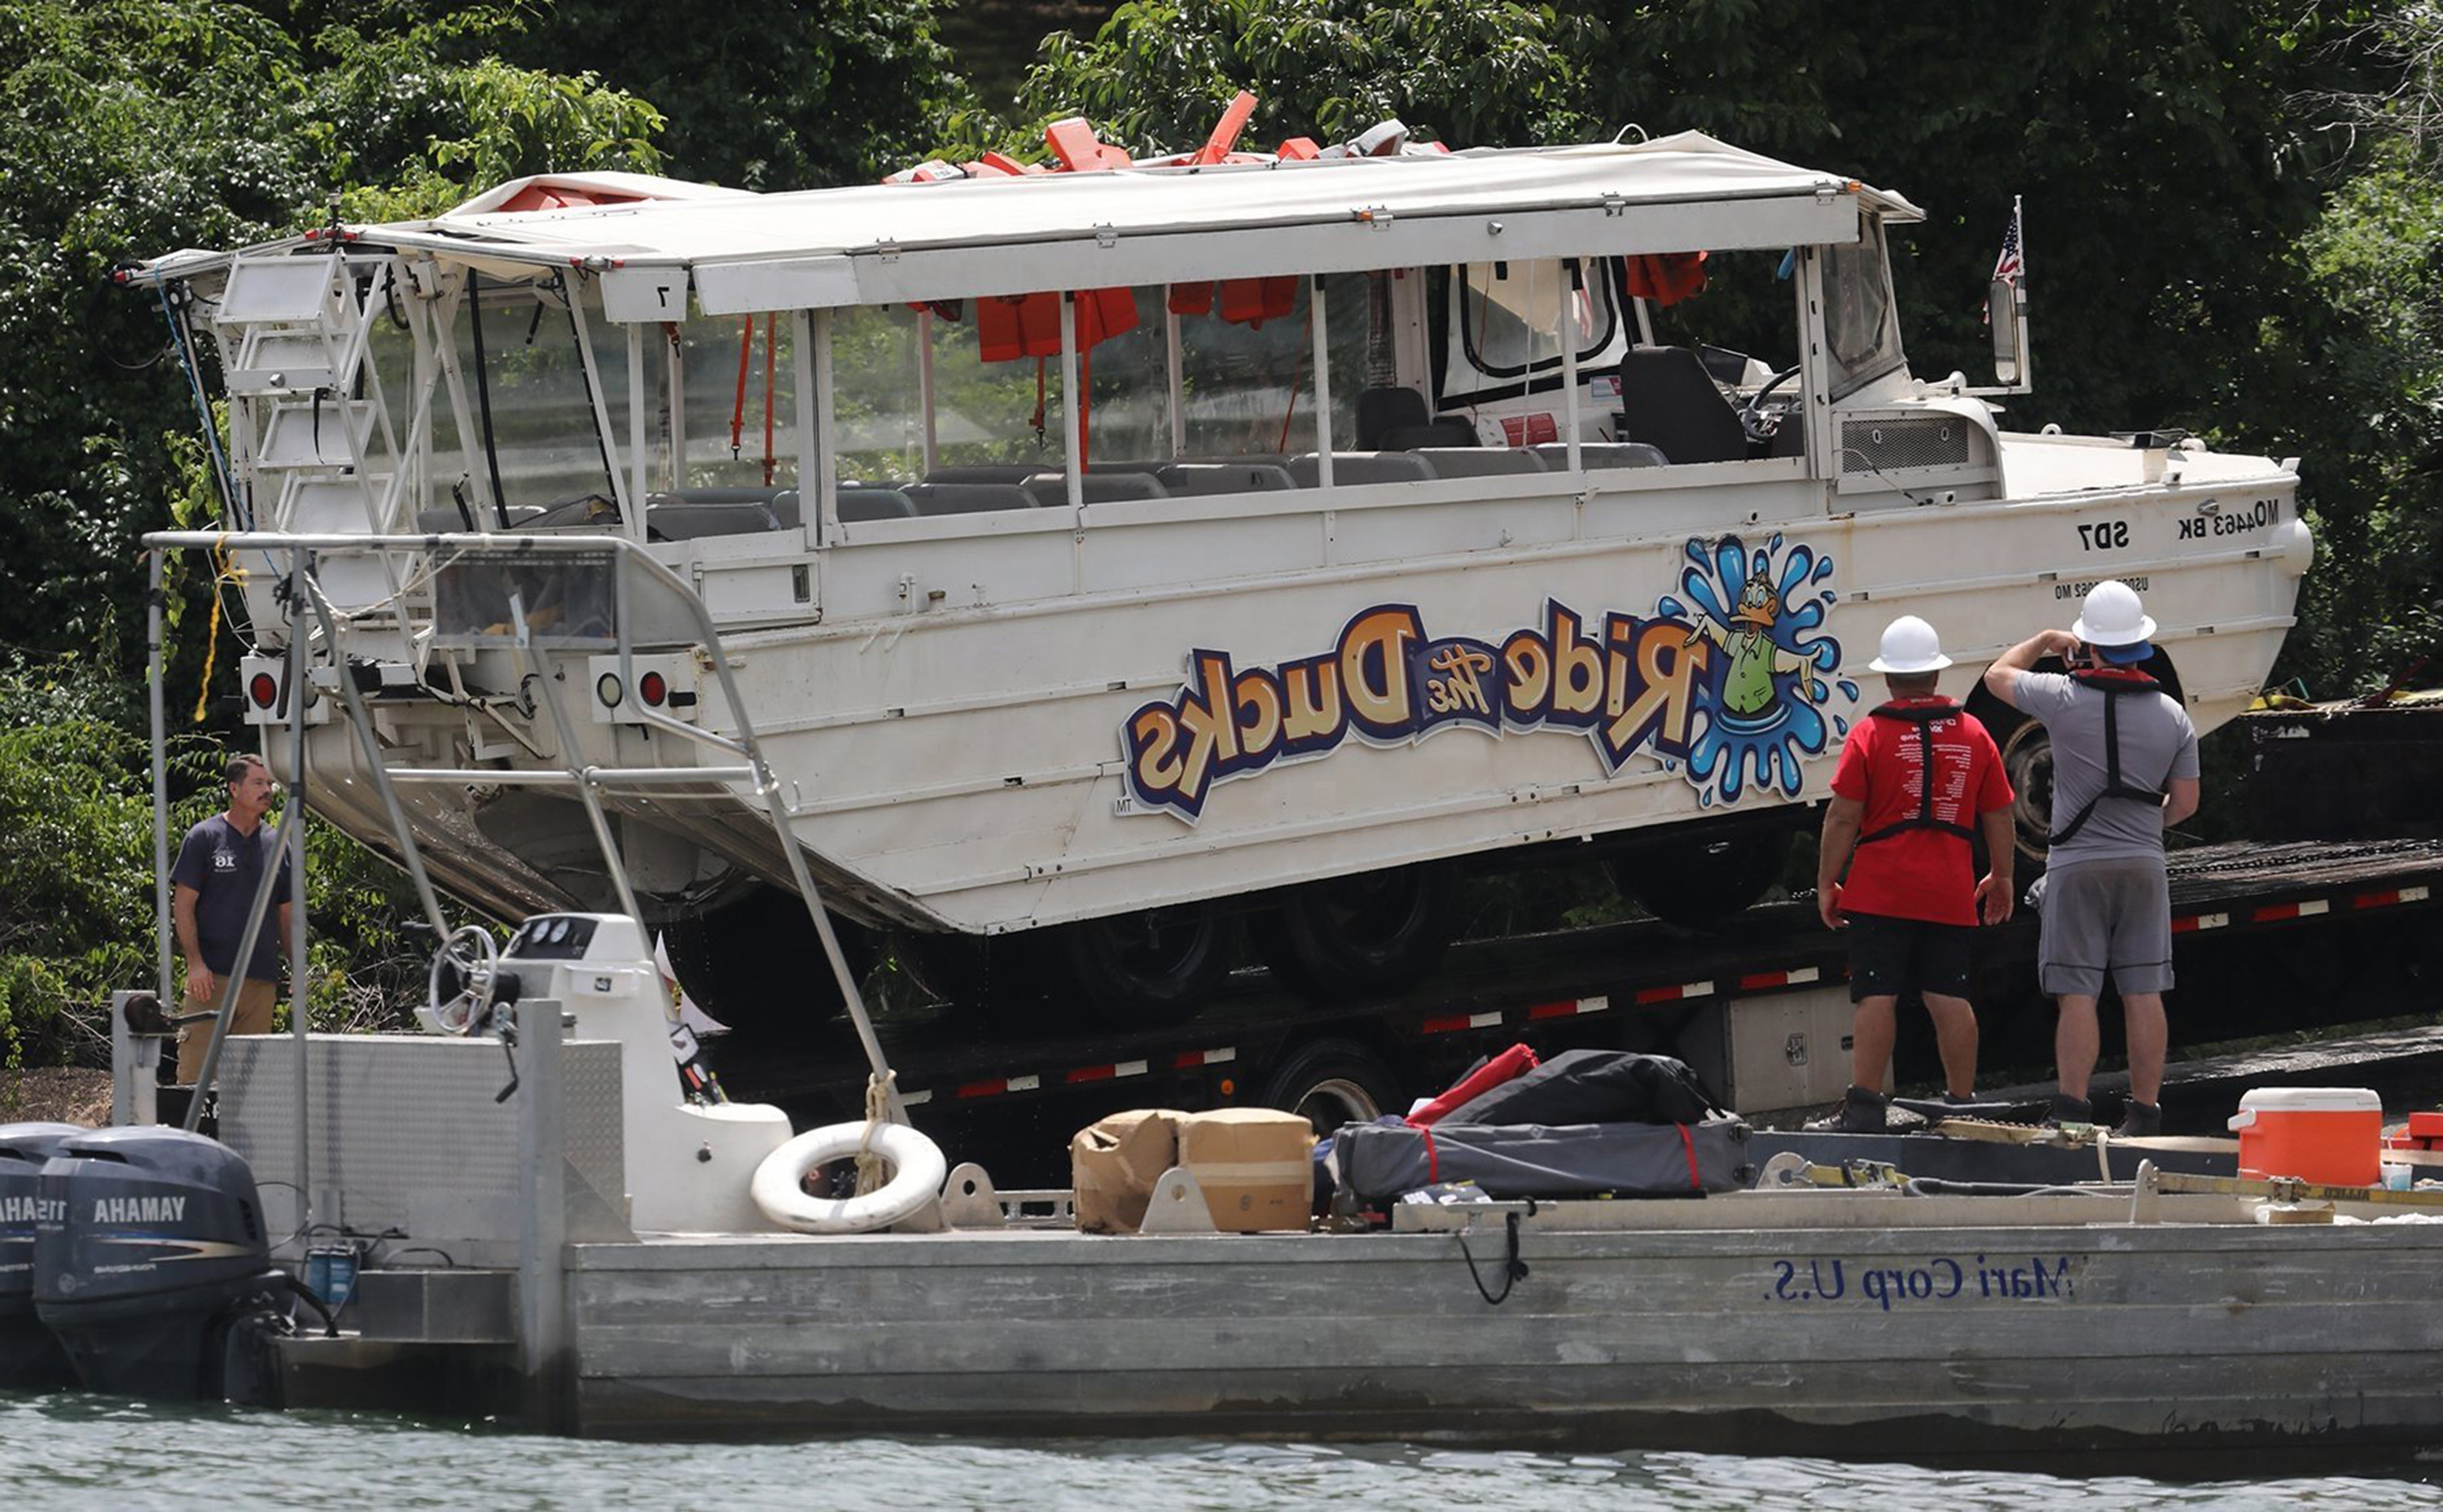 Captain of tour boat that sank on Missouri lake, killing 17, indicted on federal charges